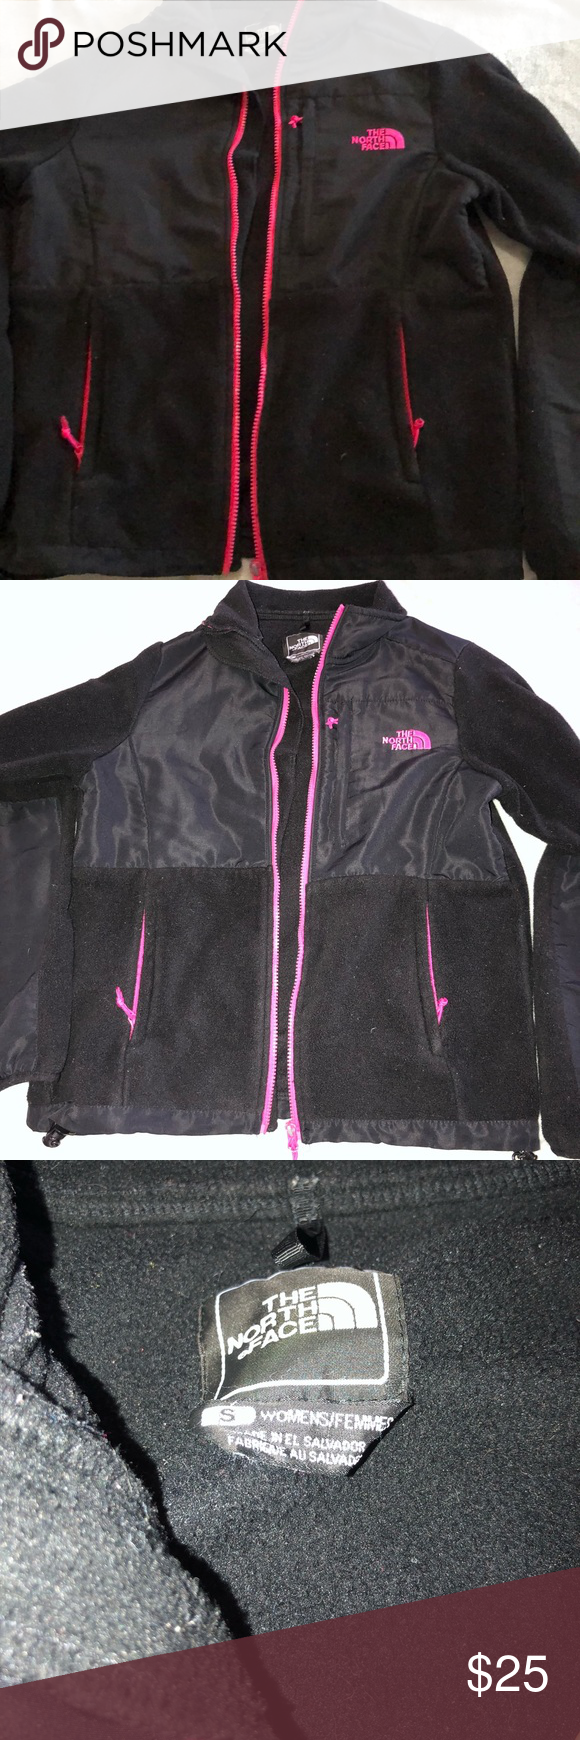 Black And Pink North Face Worn A Couple Of Times In Good Condition The North Face Jackets Coats Pink North Face Black North Face North Face Jacket [ 1740 x 580 Pixel ]